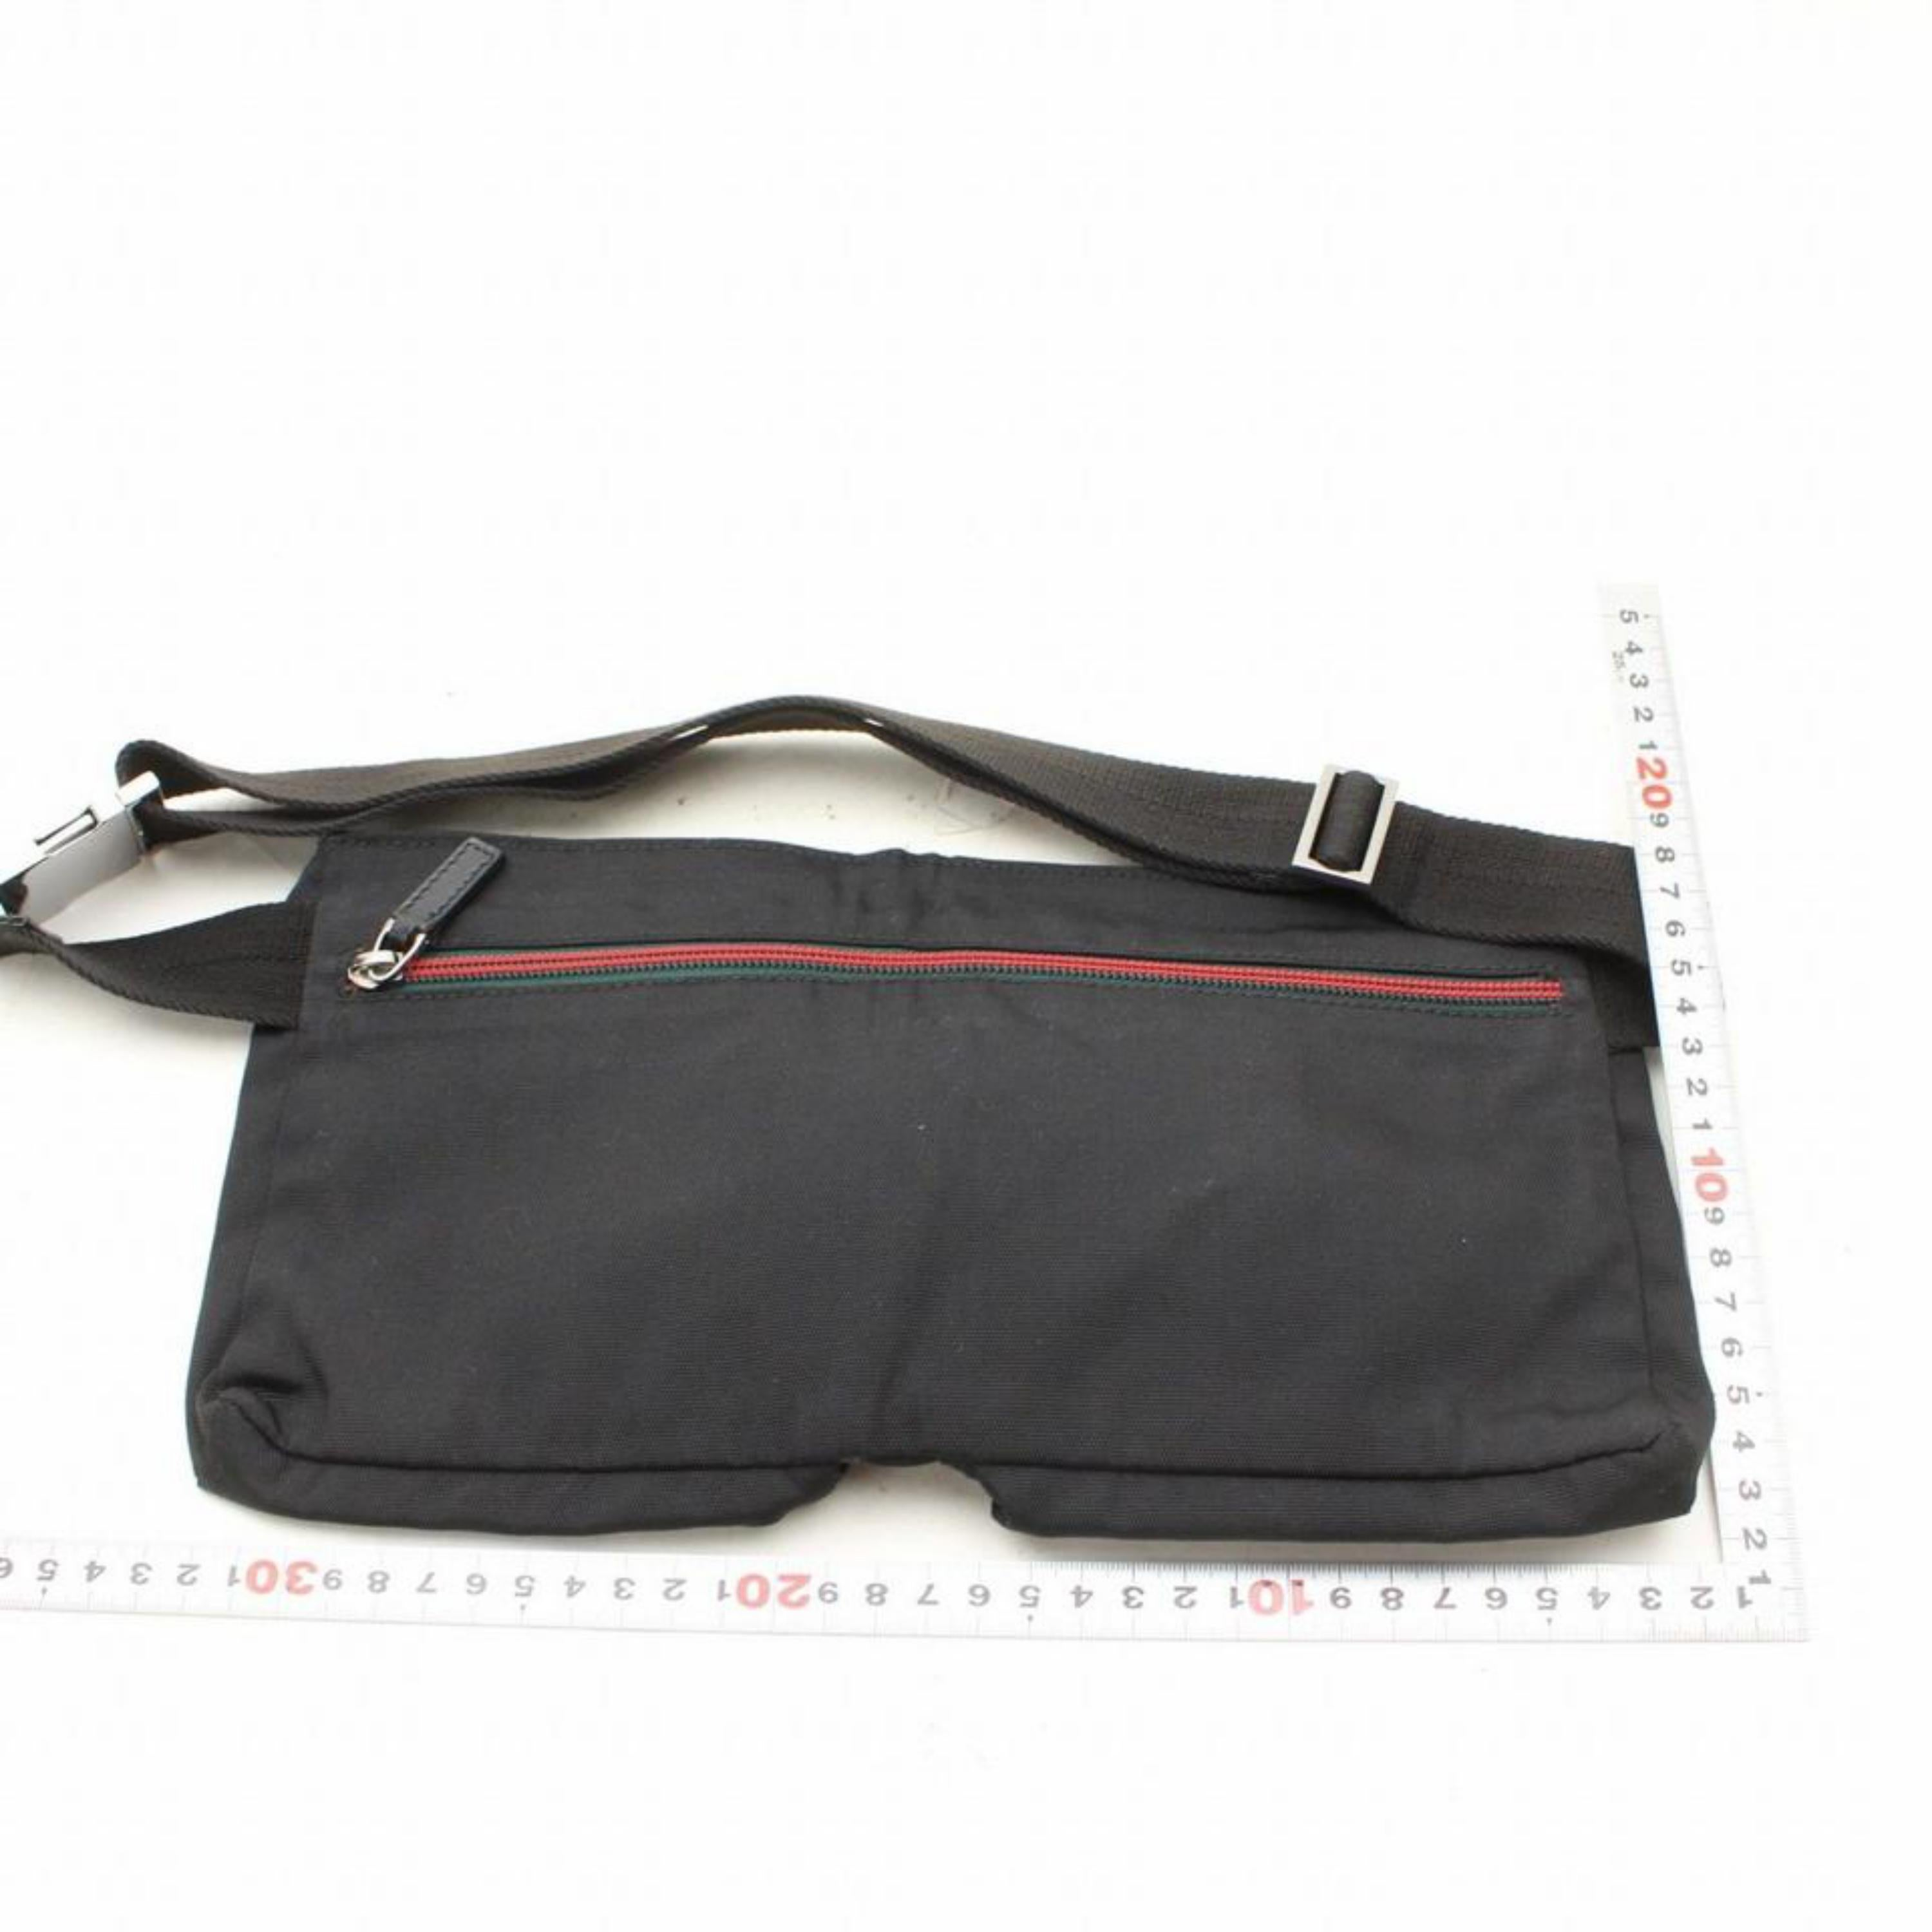 582776851f511f Gucci Sherry Web Fanny Pack Waist Pouch 868544 Black Nylon Cross Body Bag  For Sale at 1stdibs